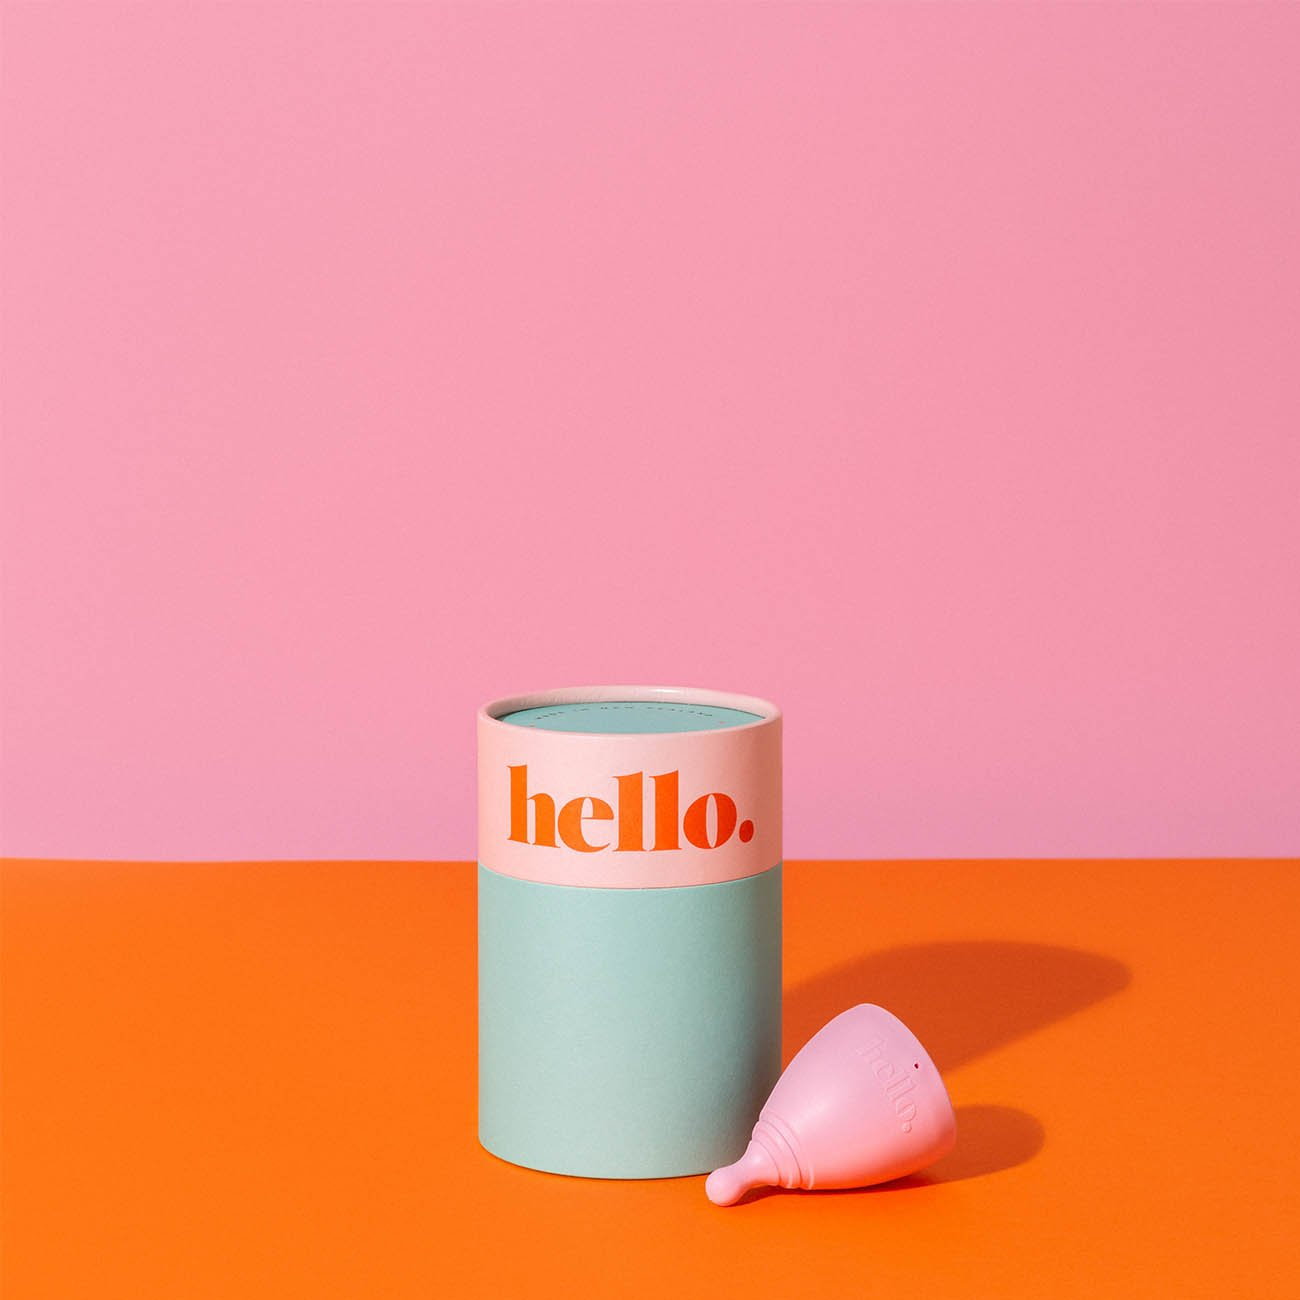 large blush Menstrual cup by the hello cup